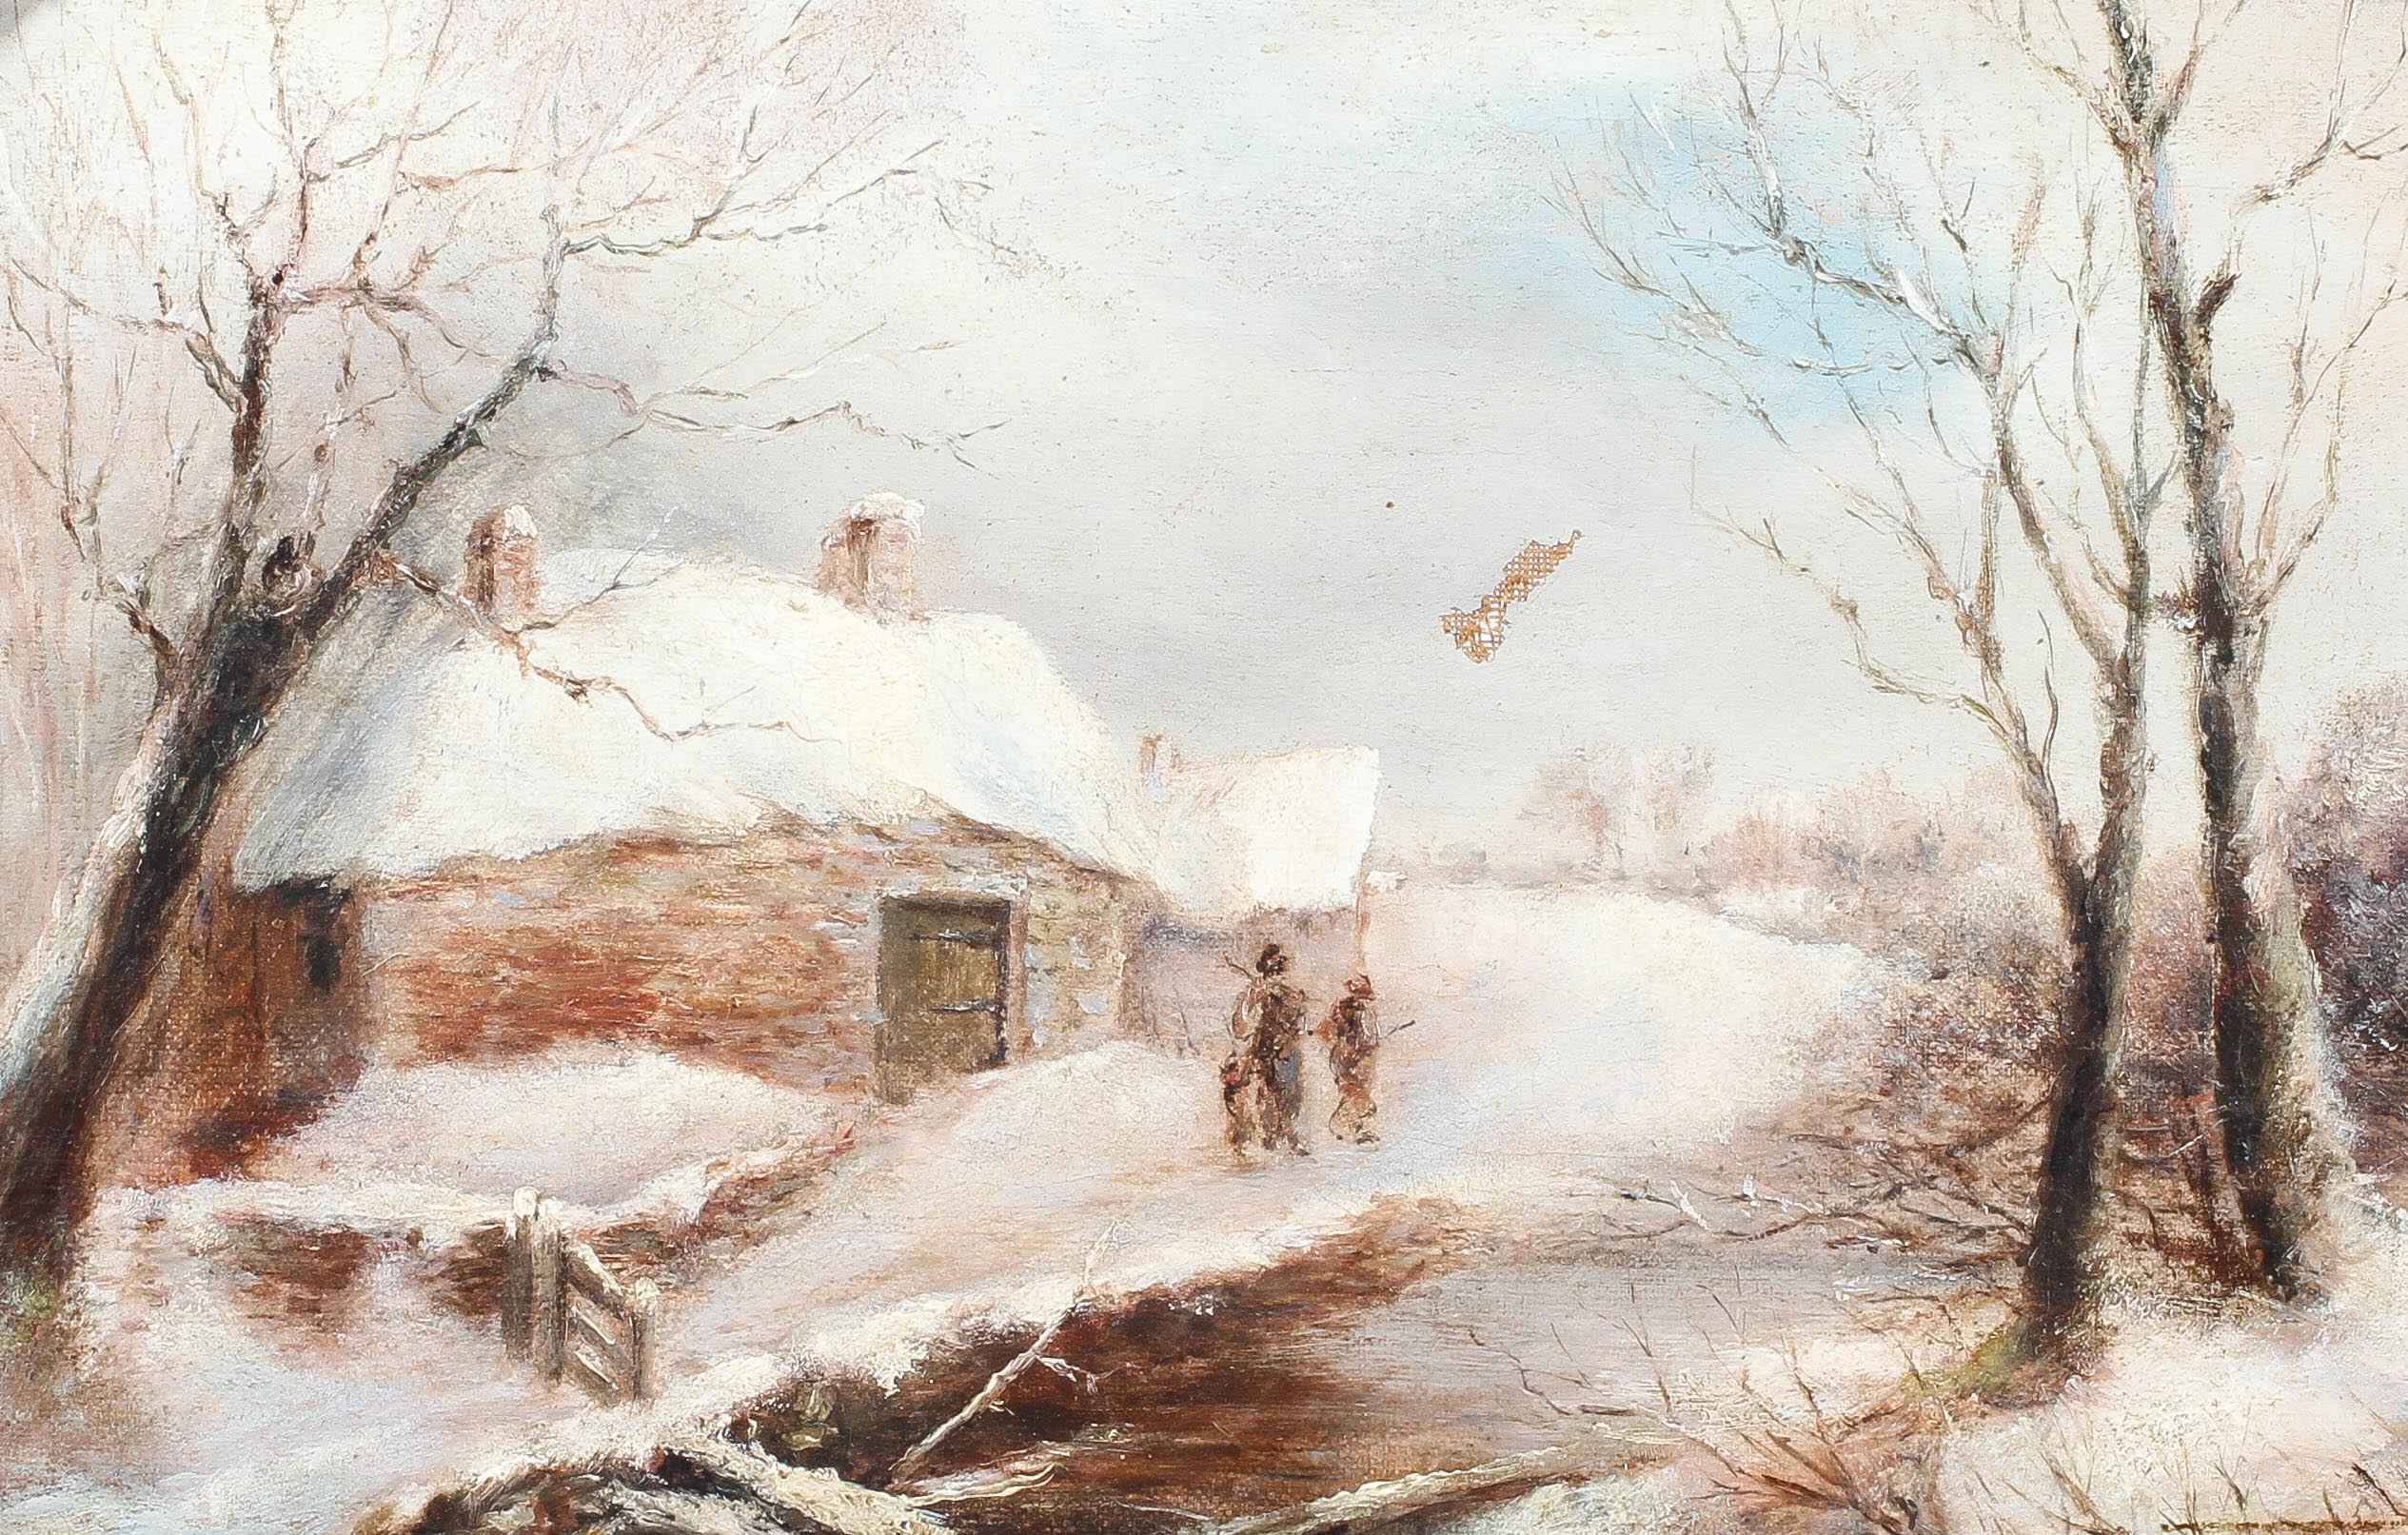 George Turner, Breadsall, Derbyshire - a snowy scene, oil on canvas, signed lower right,